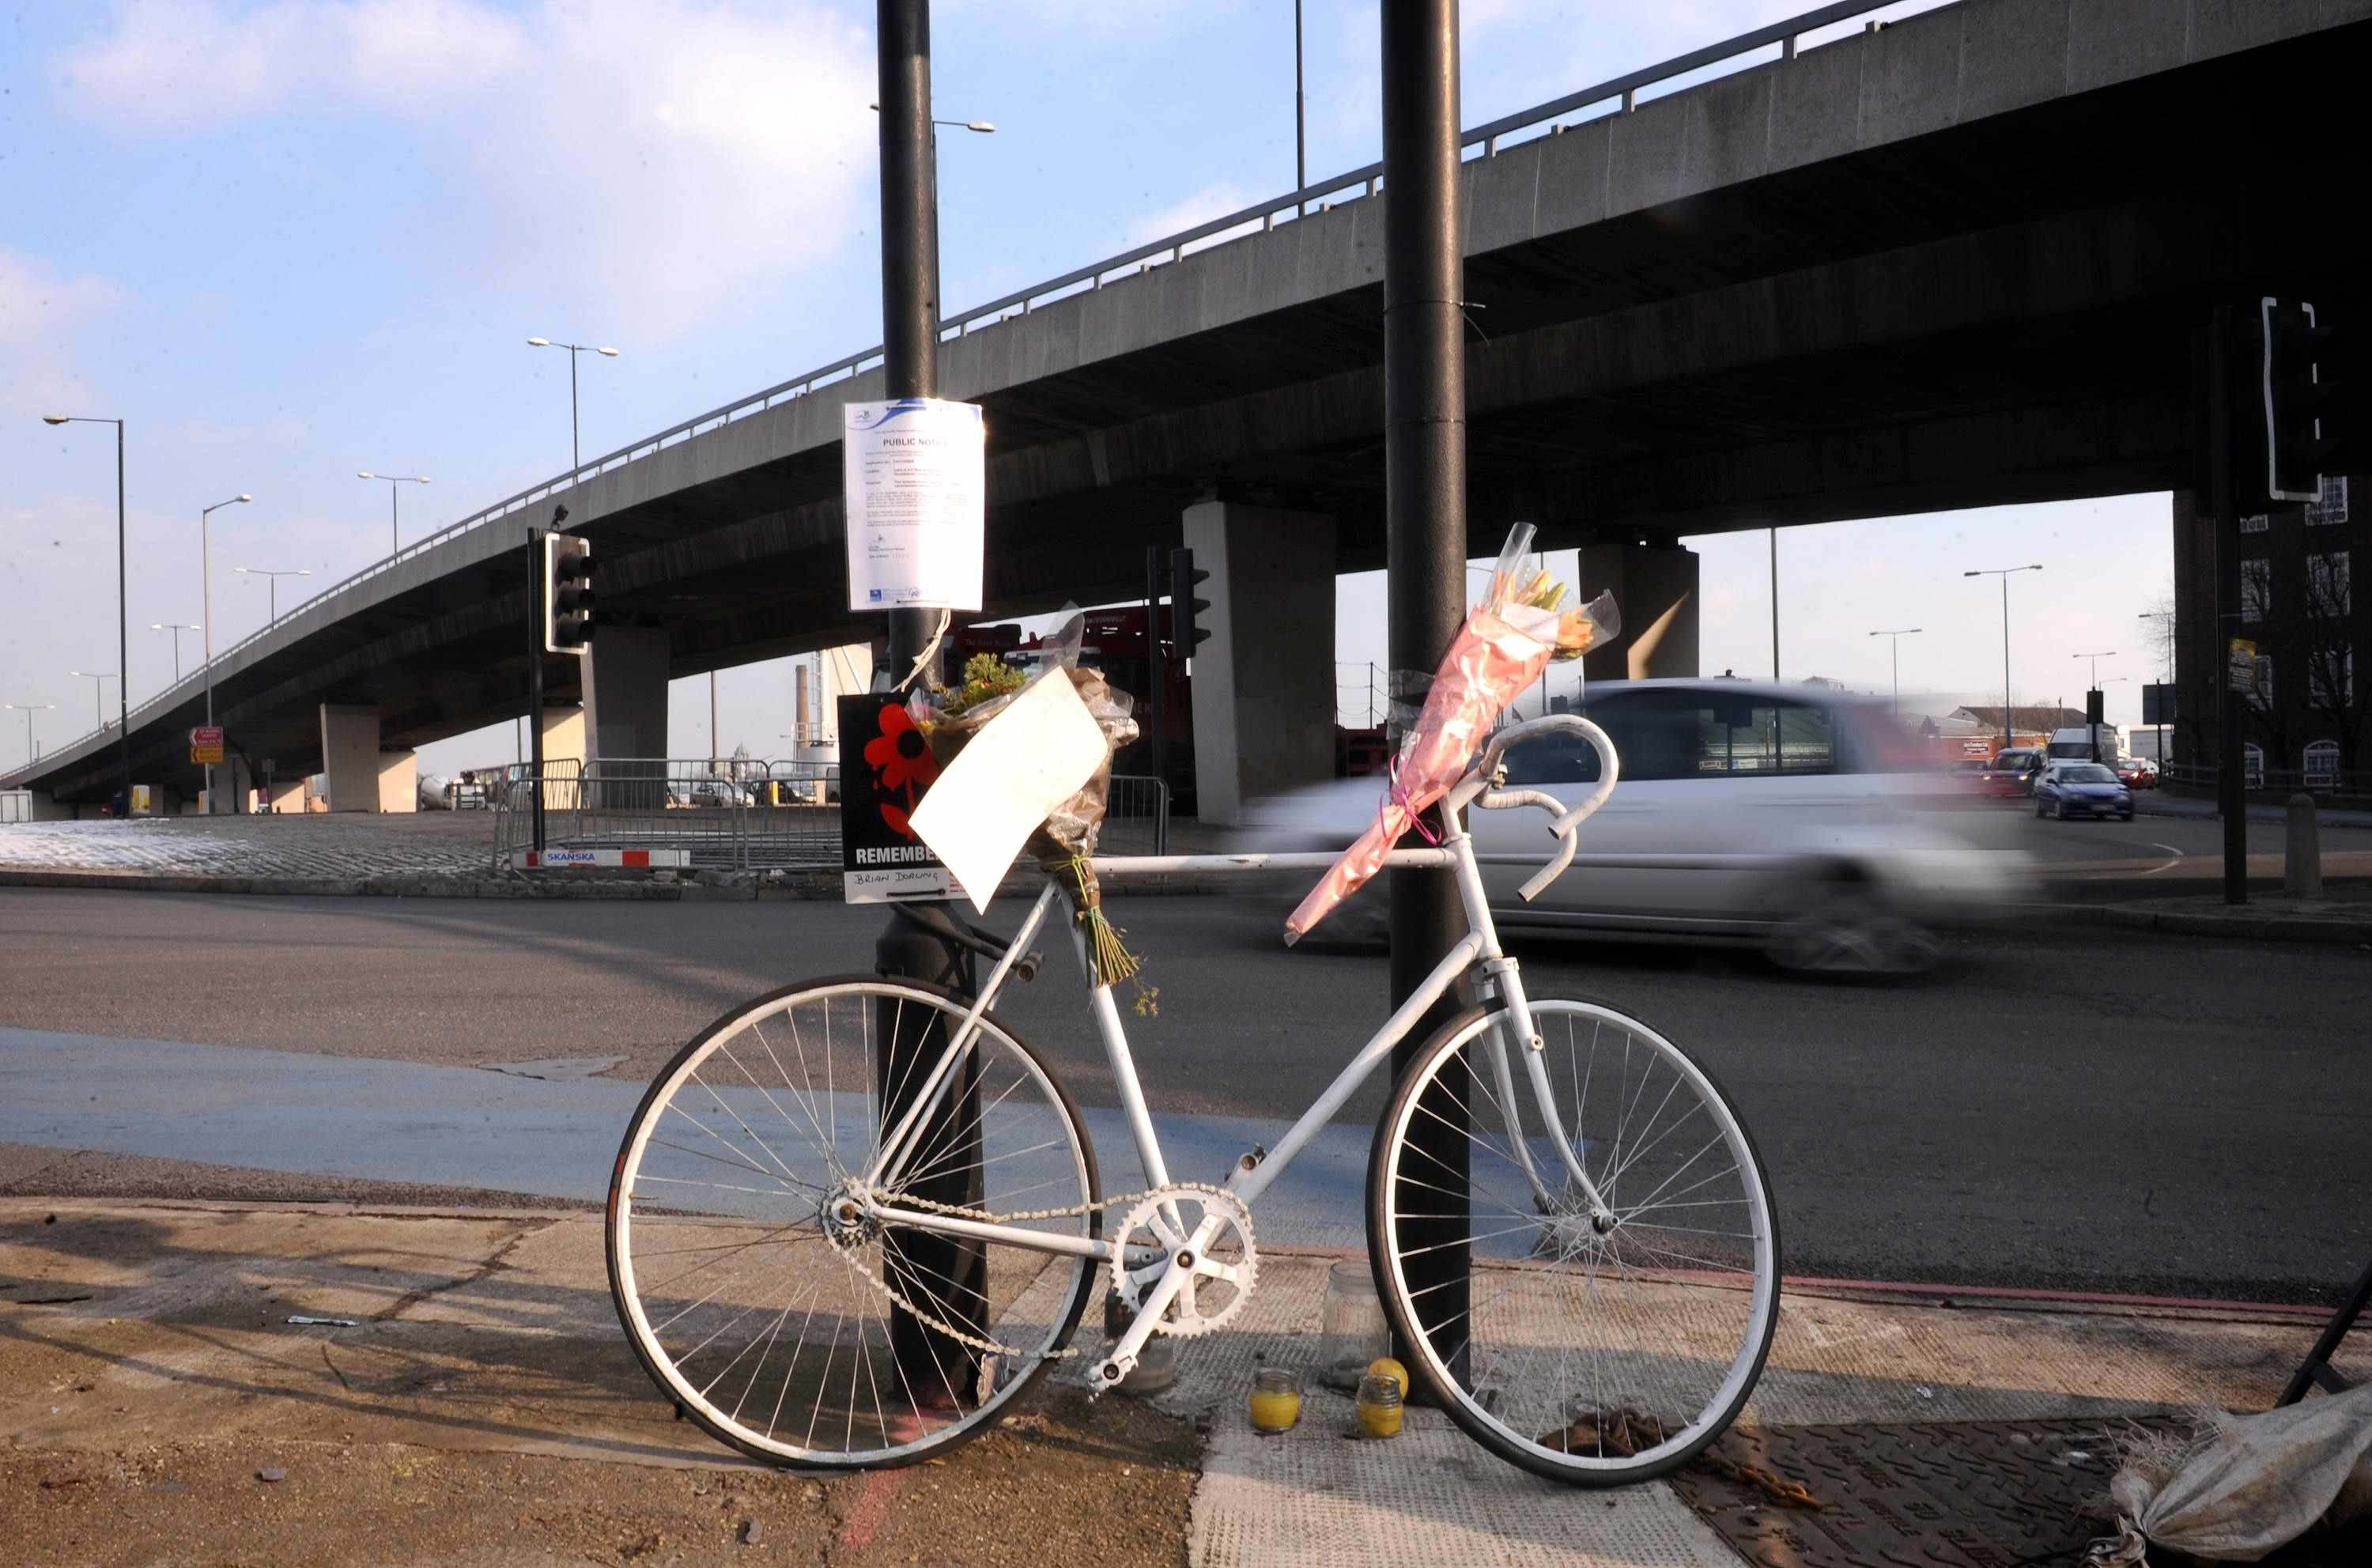 A ghost bike in memory of Brian Dorling killed at Bow Roundabout - the scene of the latest London cycling death